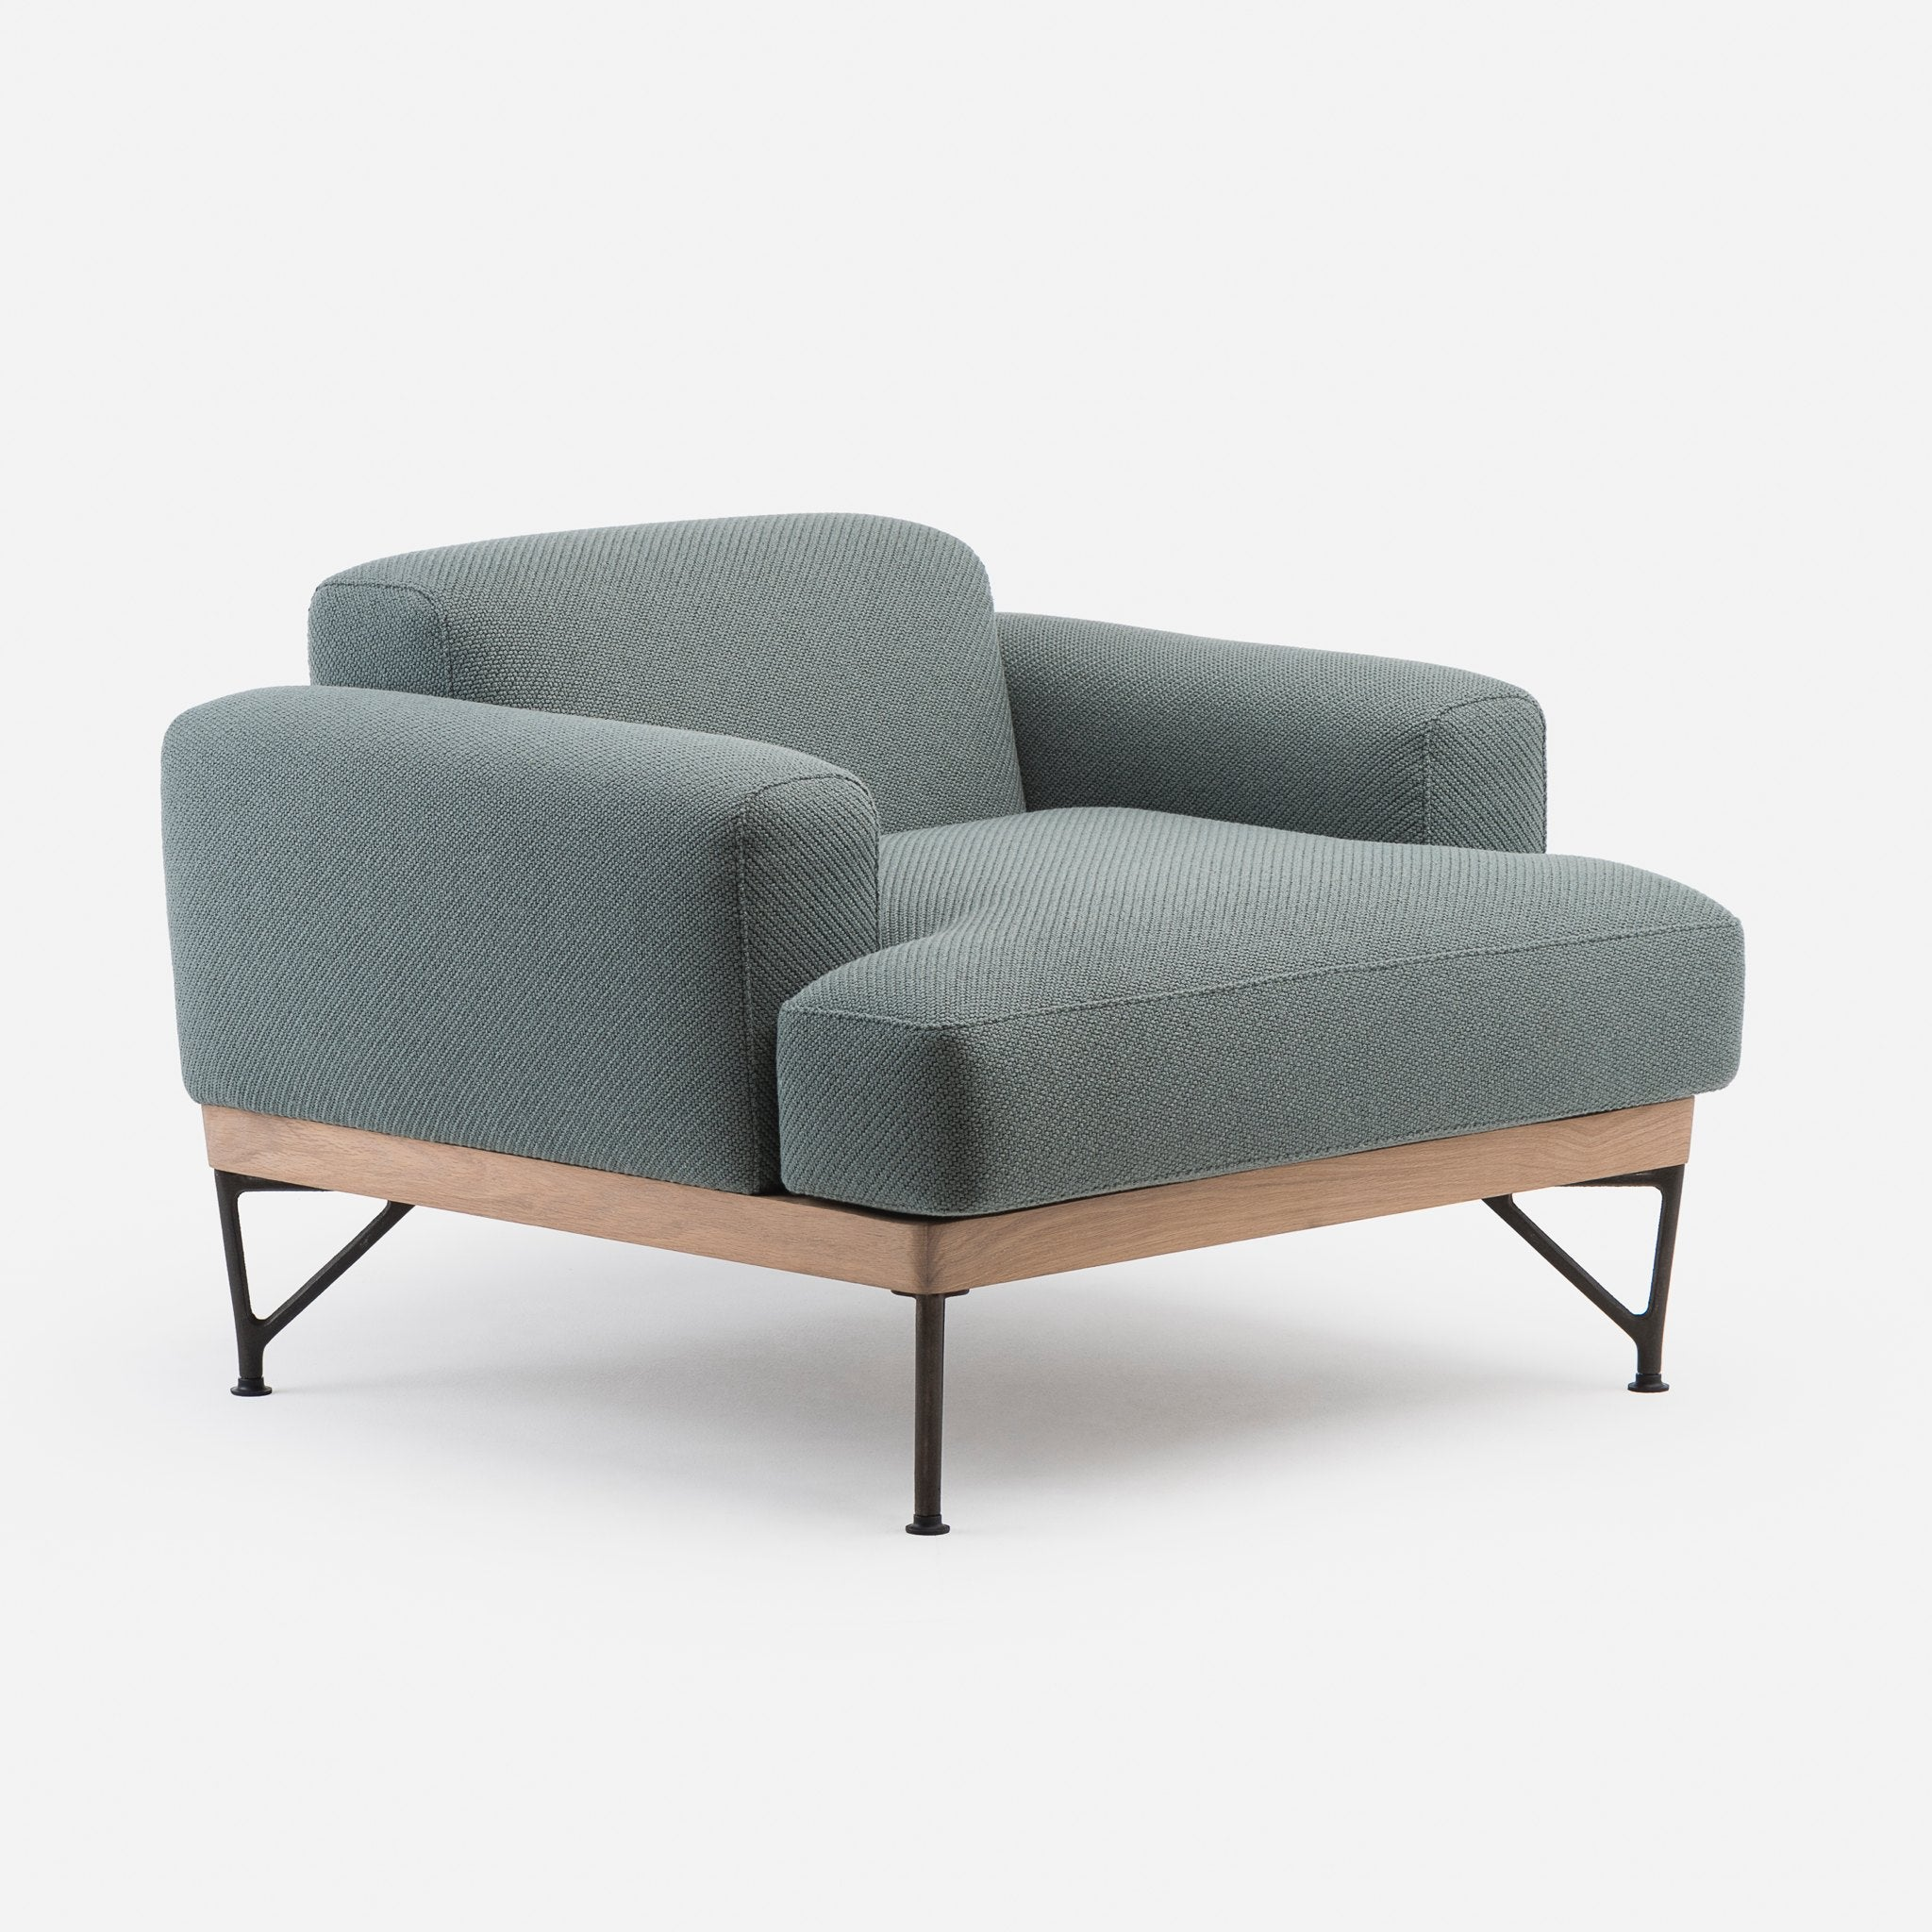 386S_Armstrong_Armchair_by_Matthew_Hilton_in_white_oiled_oak_and_Coda_2_962?vu003d1504036426